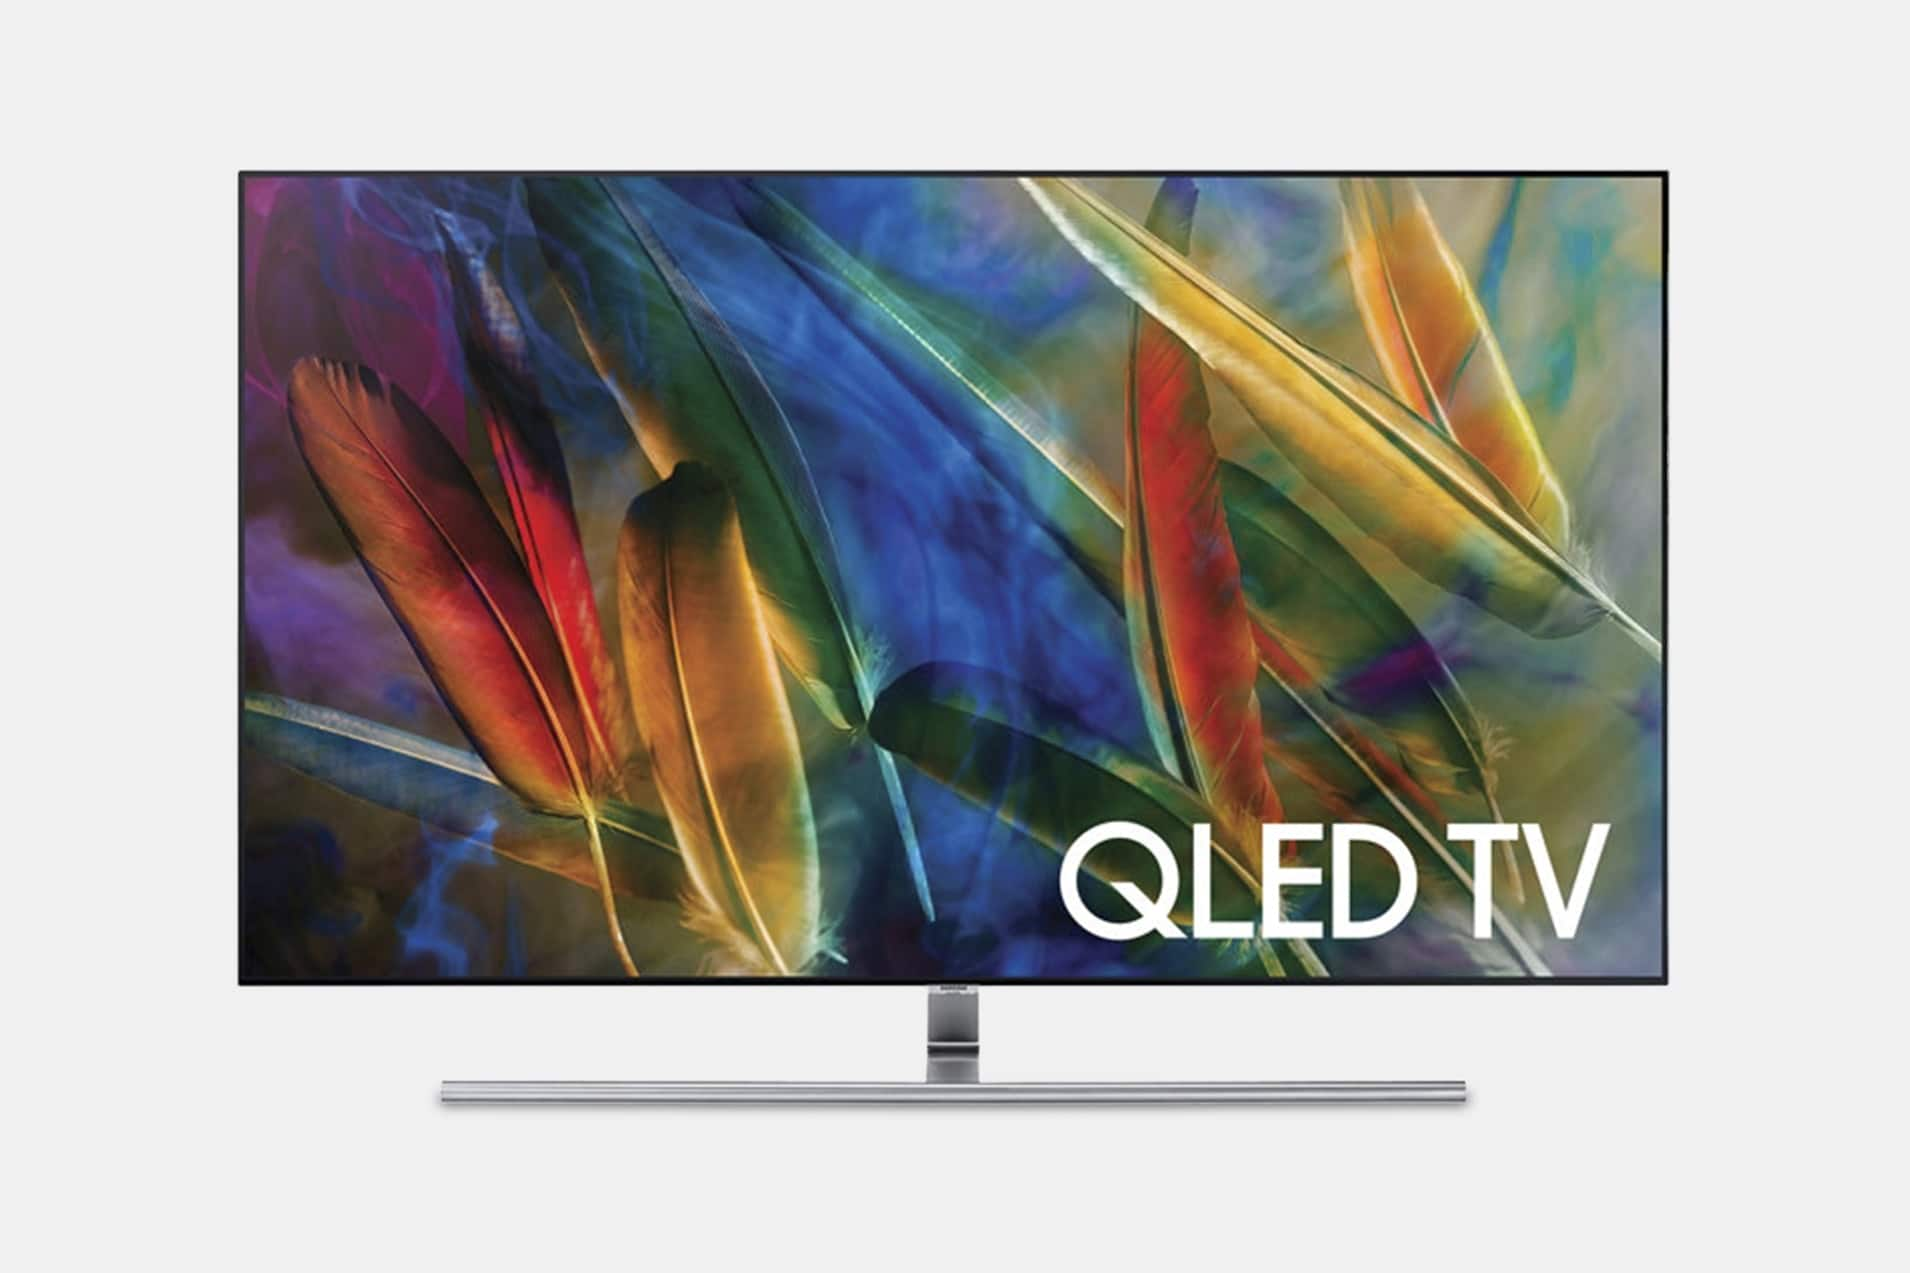 Massdrop: Samsung QN65Q7F 'QLED' TV for $1,800 with FS $1799.96